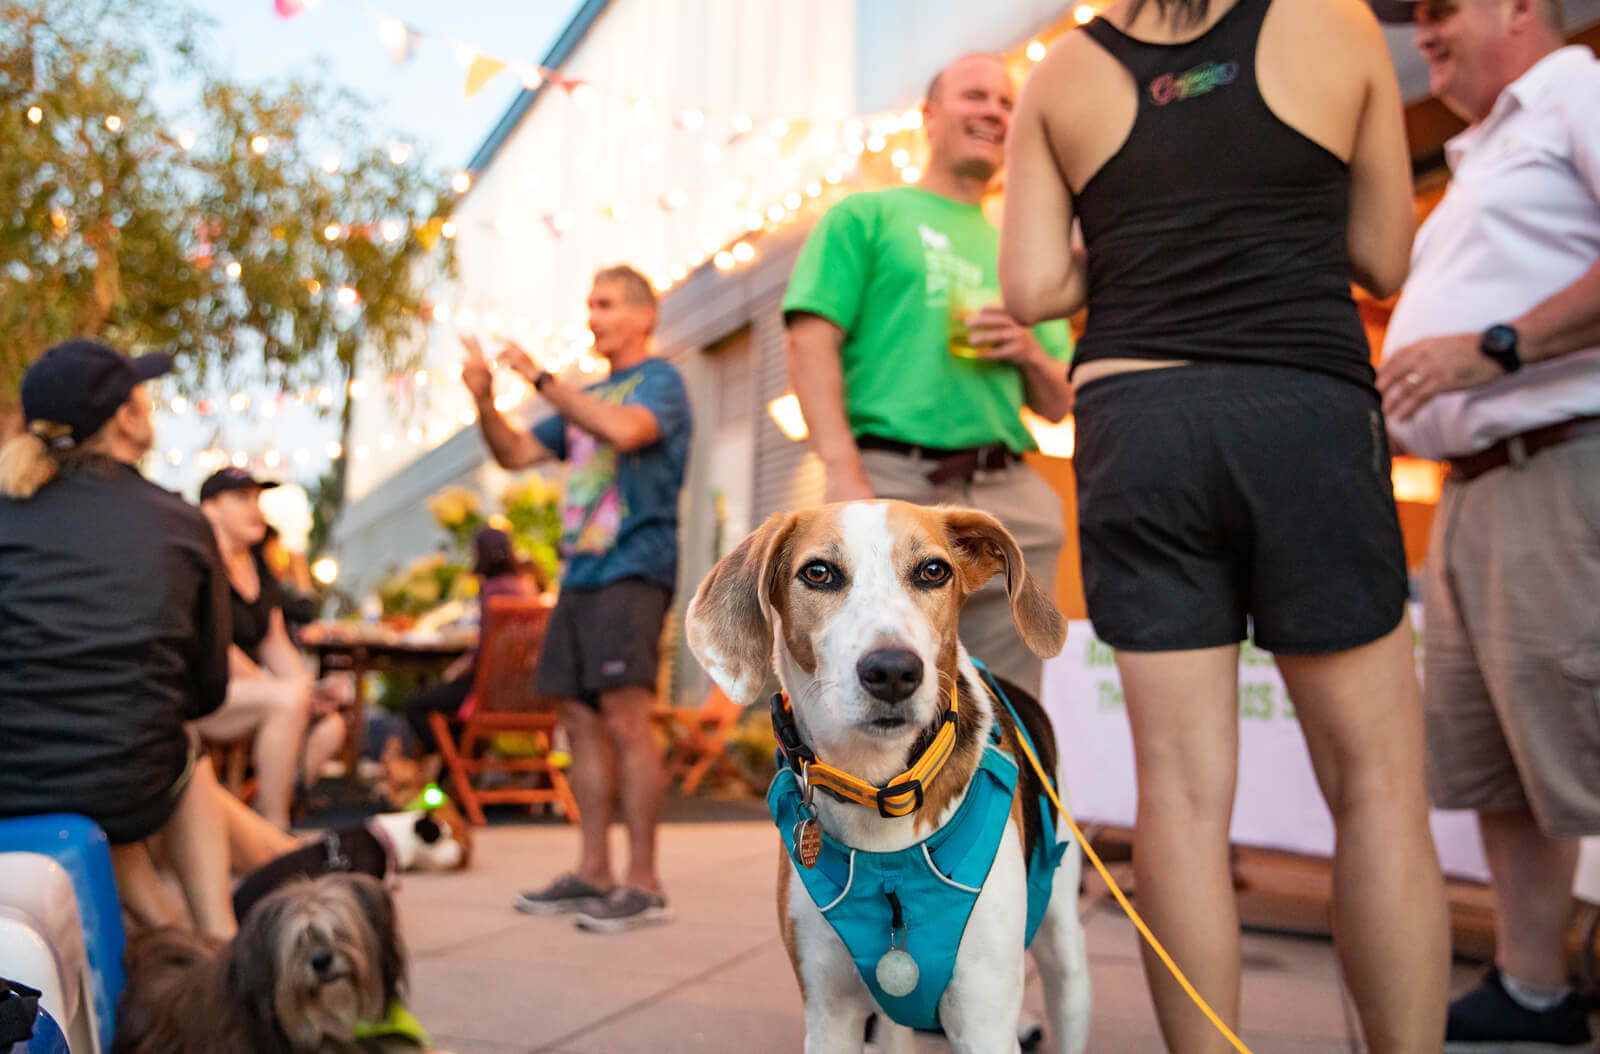 Dog with people in background at event